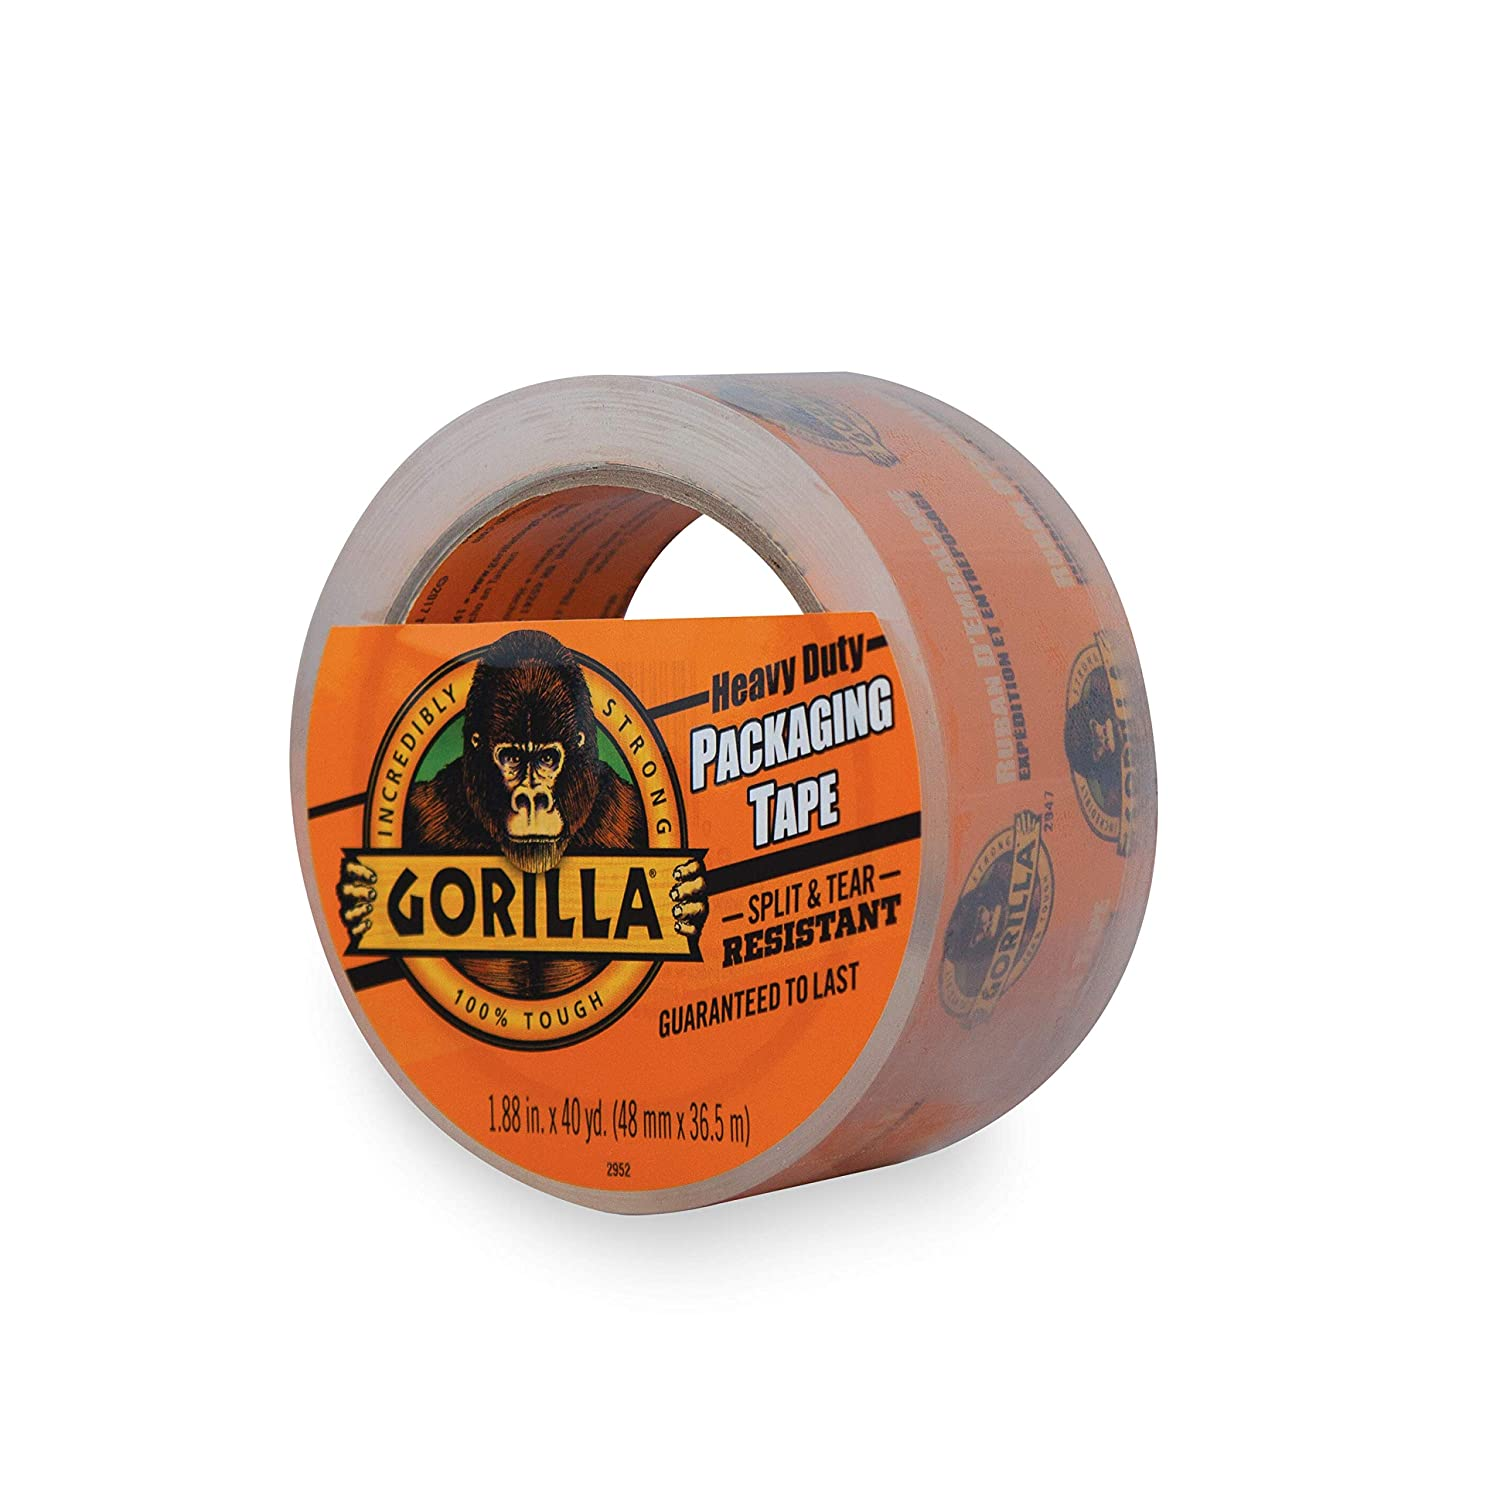 Gorilla Heavy Duty Large Core Packing Tape for Moving, Shipping and Storage, 1.88 x 40 yd, Clear, (Pack of 1) 1.88 x 40 yd The Gorilla Glue Company 6042502